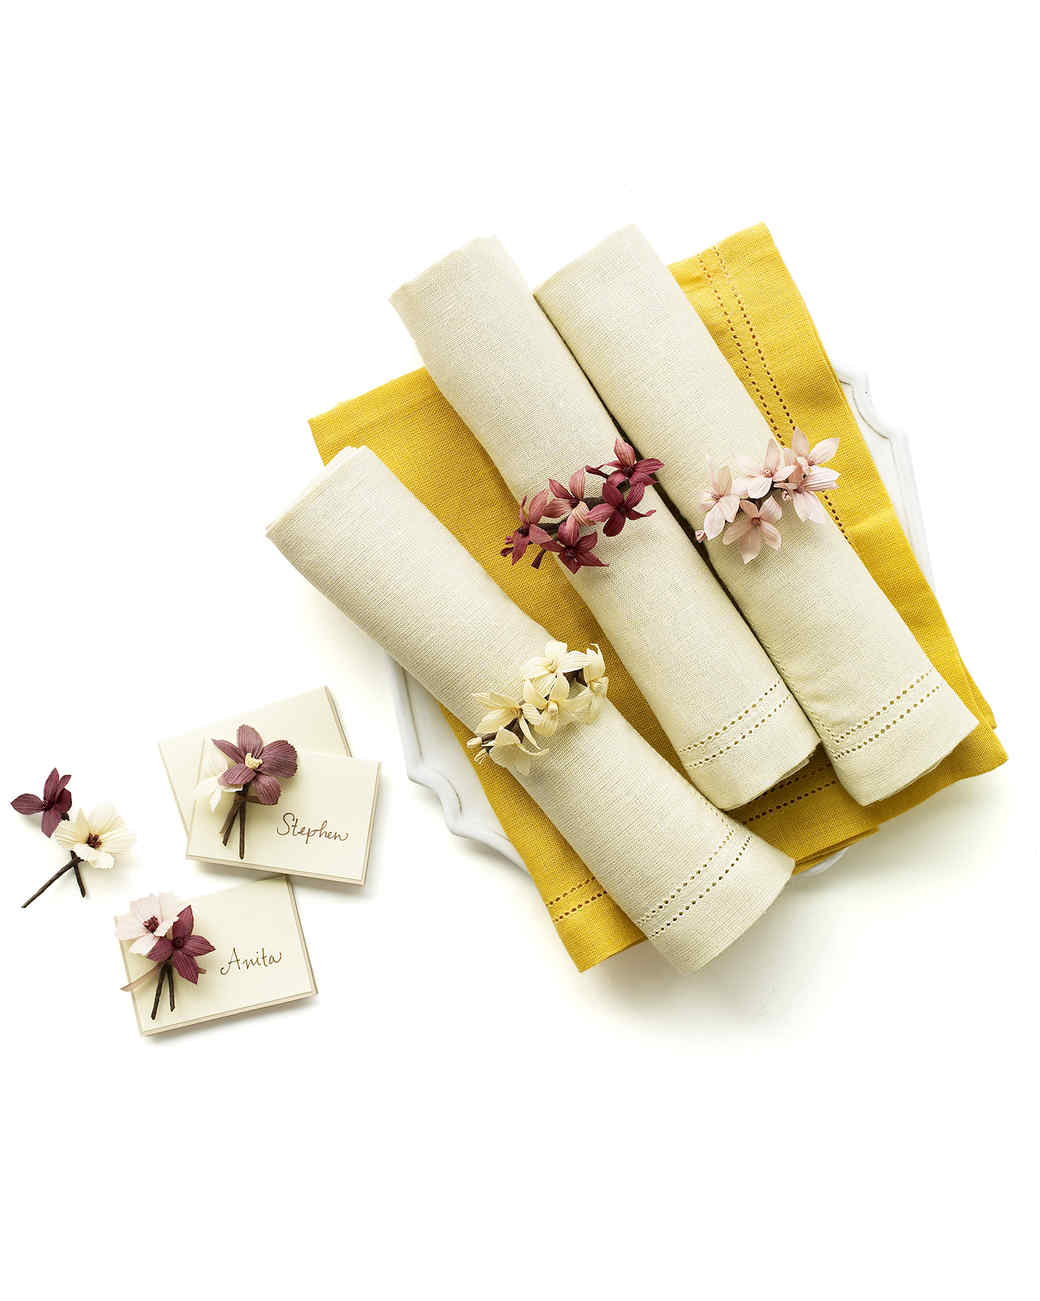 Cornhusk Napkin Rings and Place Cards | Martha Stewart